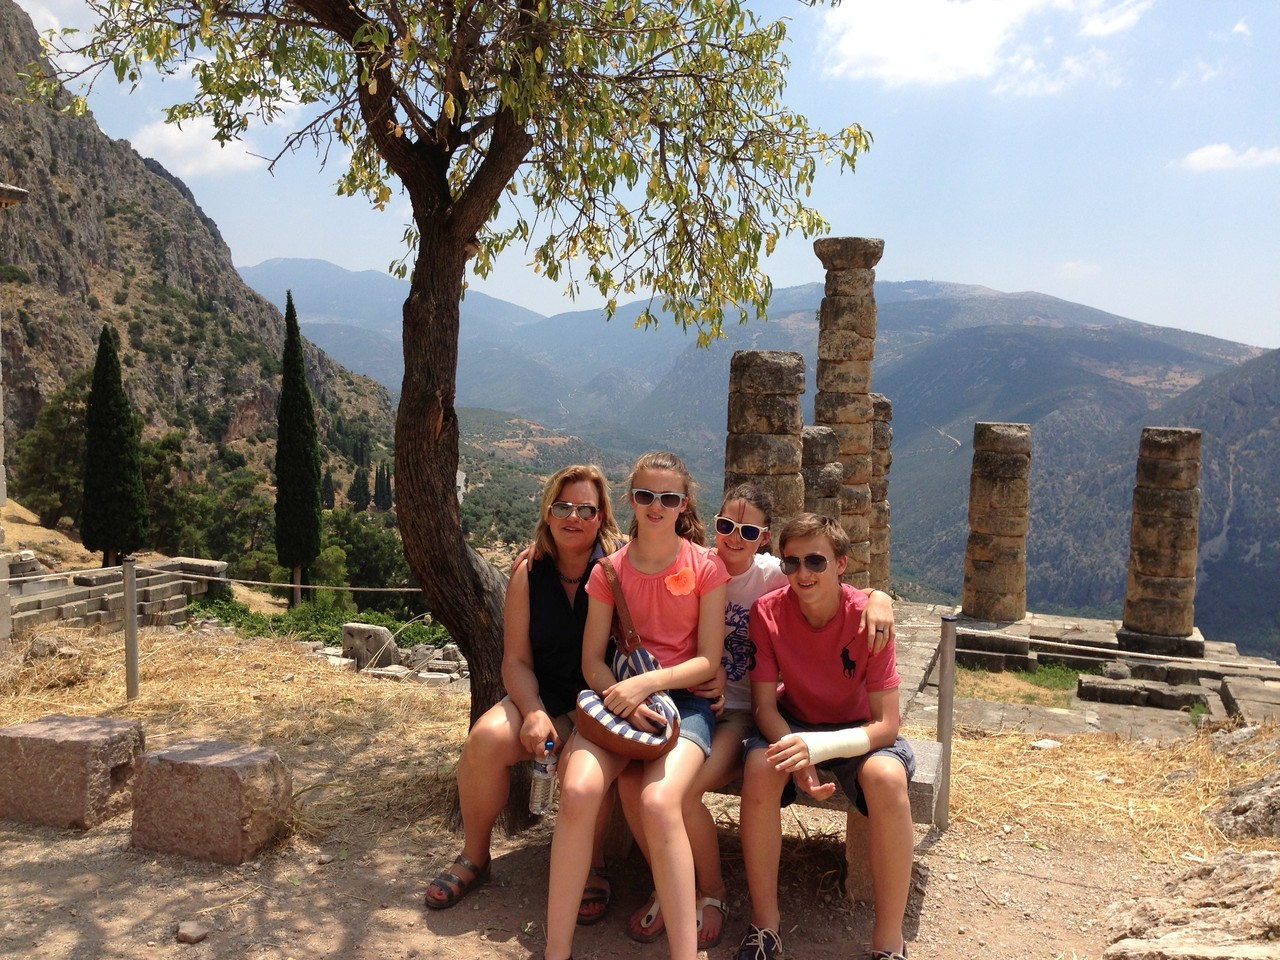 Celeste & family visit Delphi, Greece